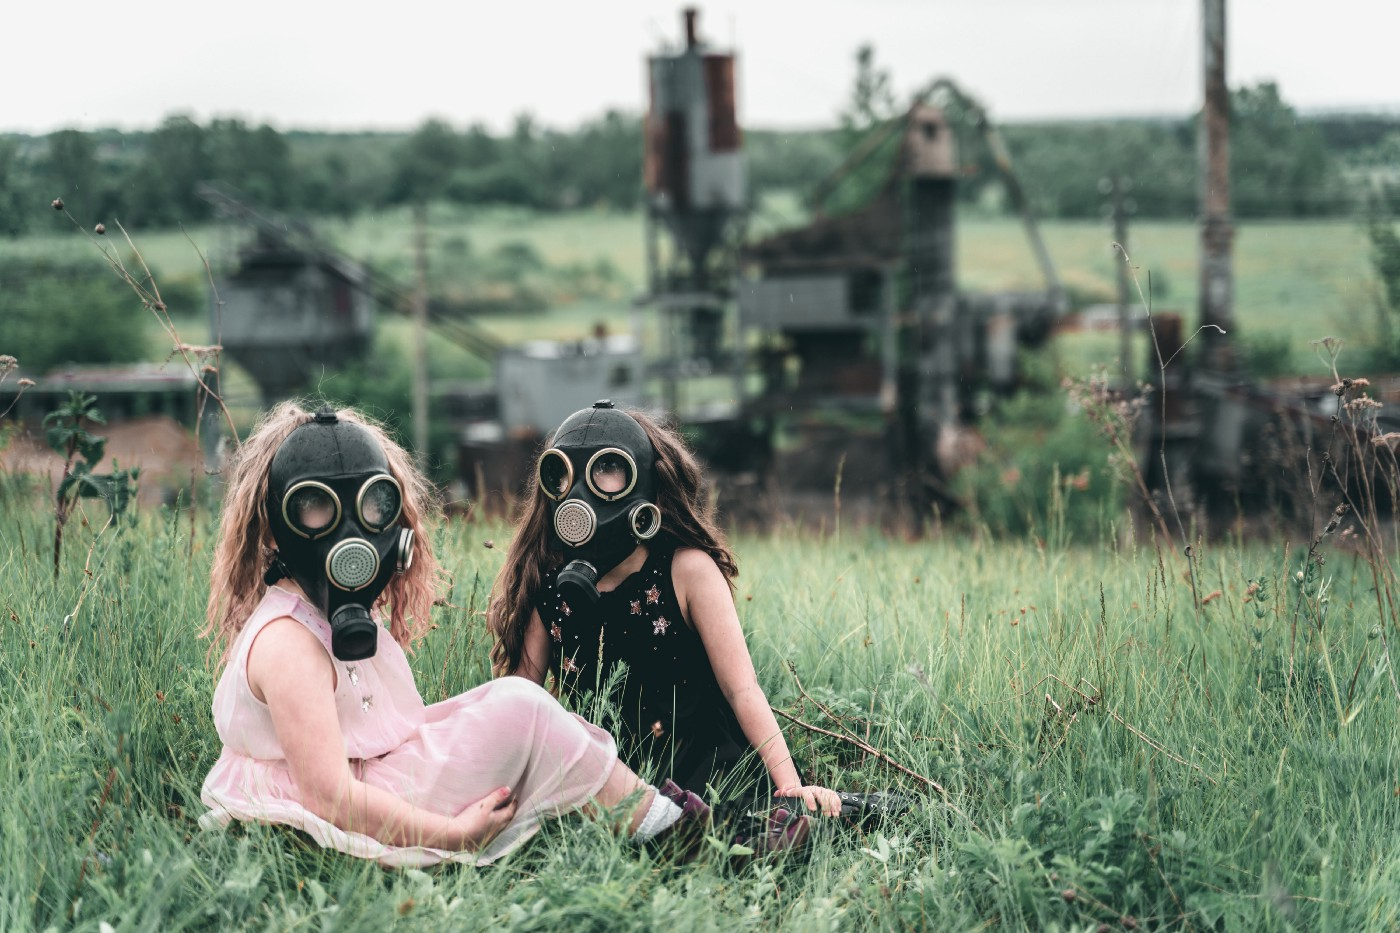 Two young girls sit on grass wearing gas masks.